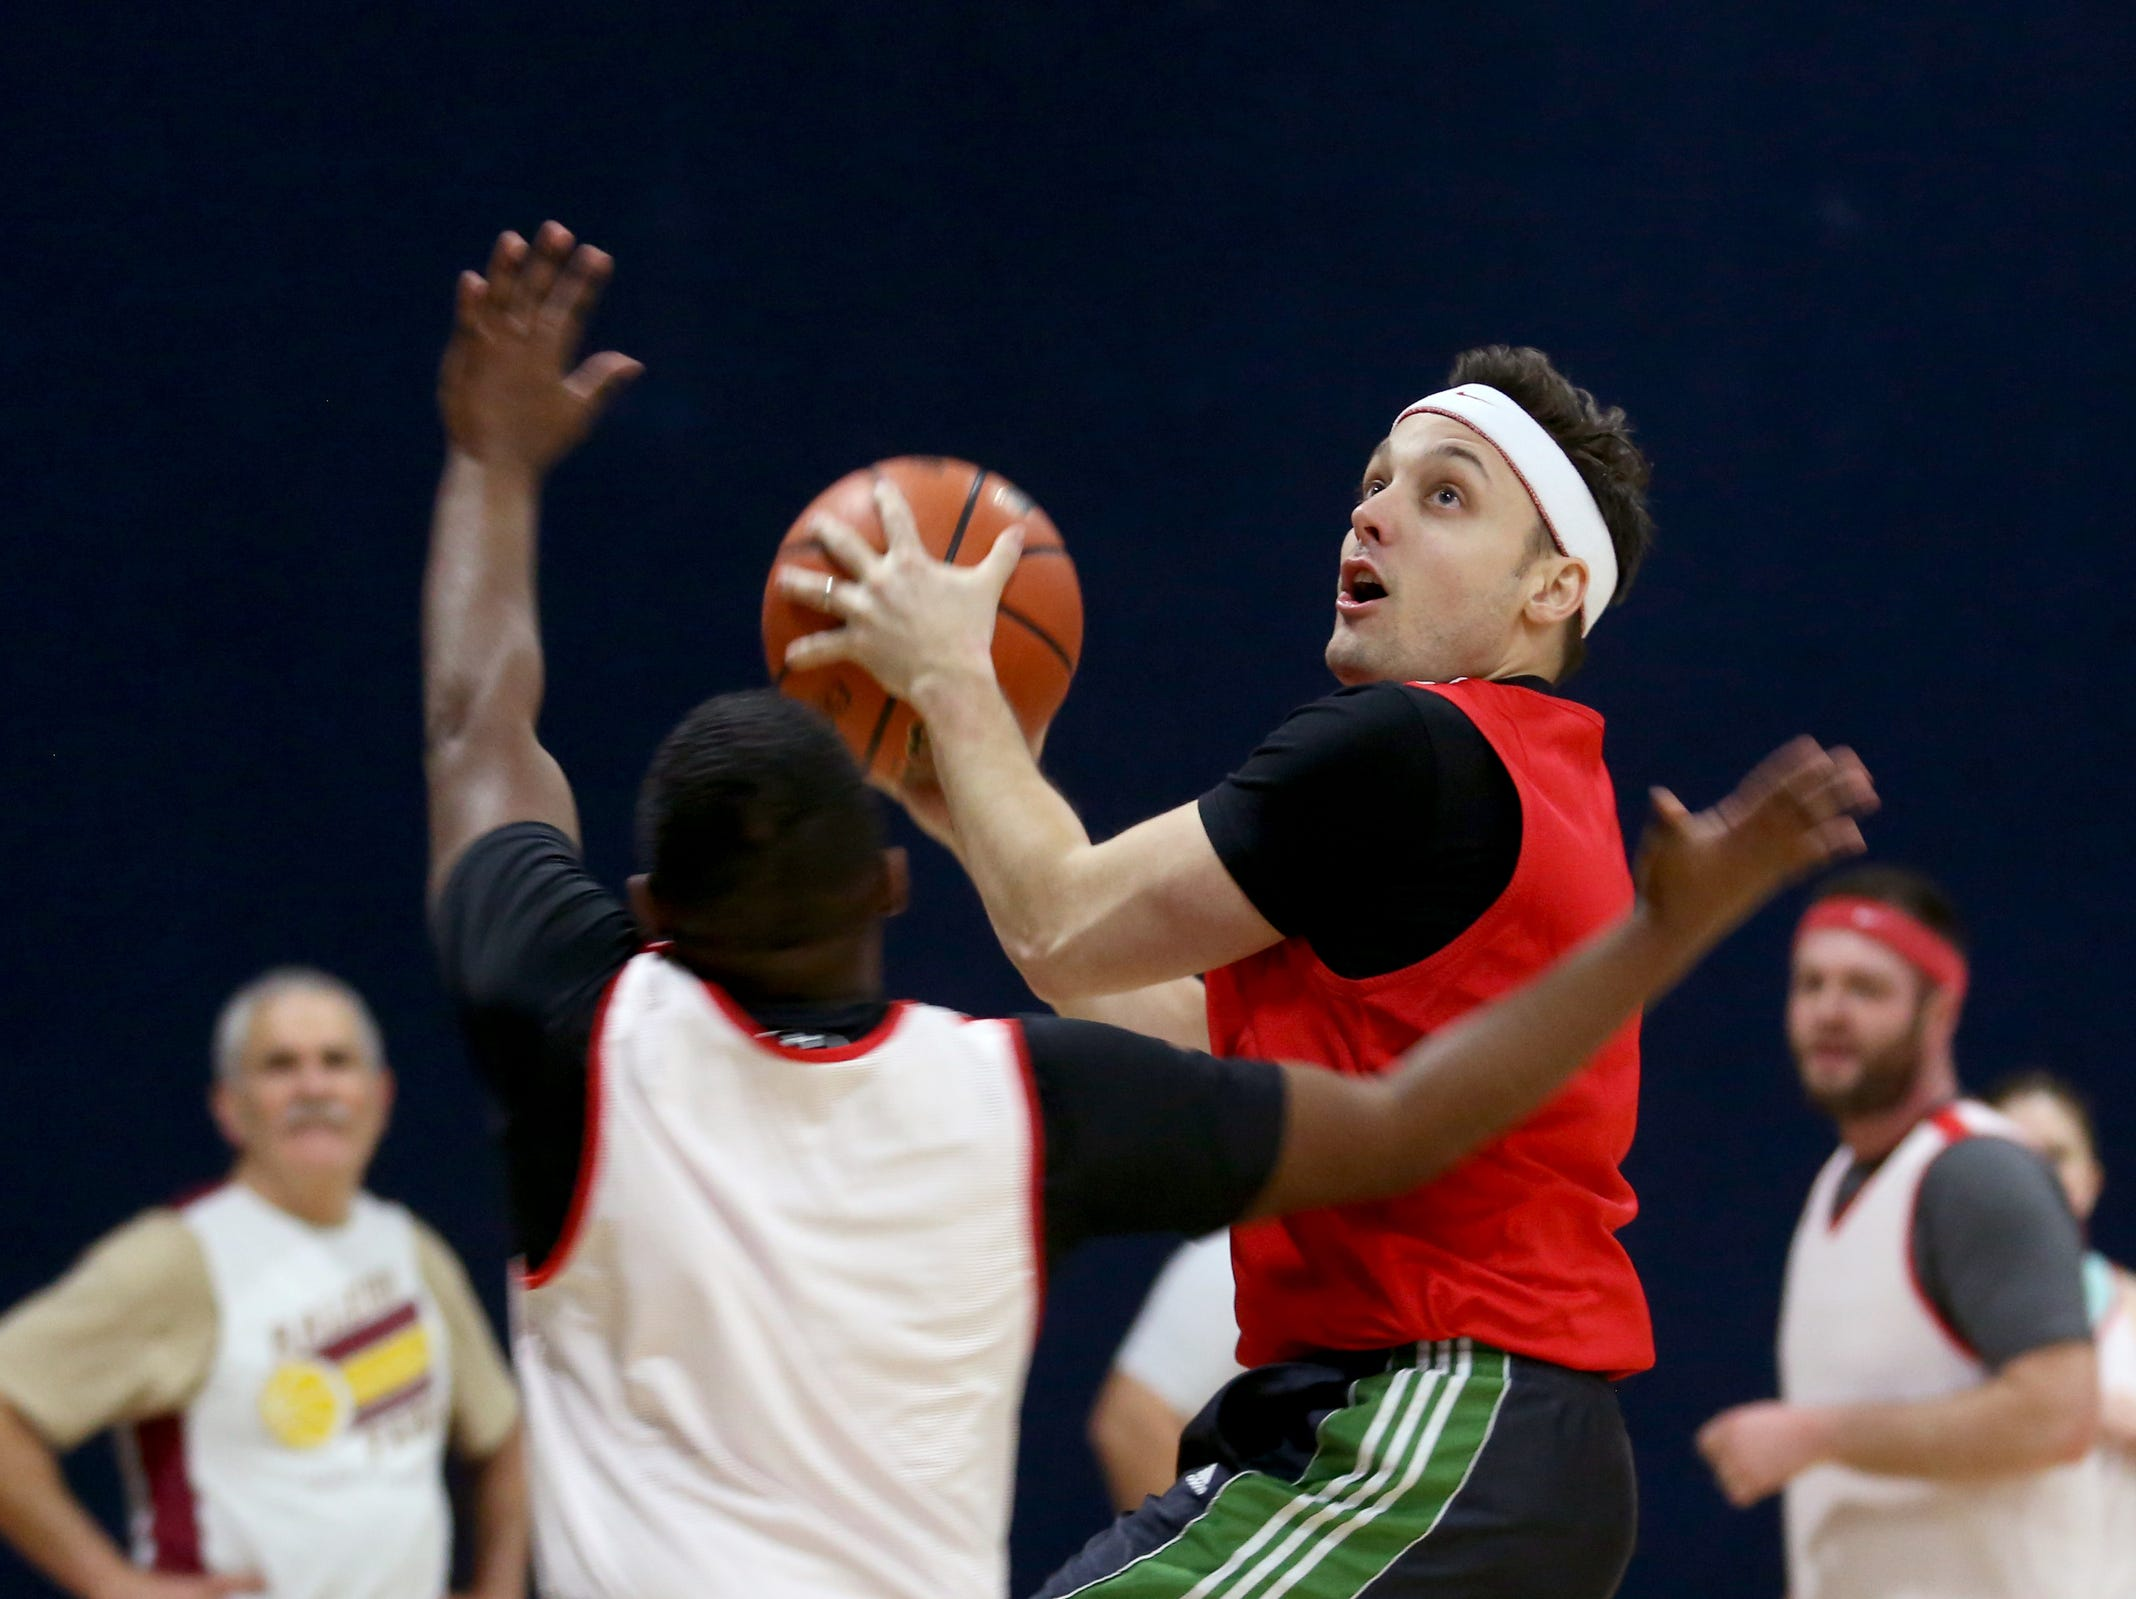 Senate players compete in the second annual House vs. Senate charity basketball tournament at the Boys & Girls Club in Salem on March 13, 2019. The tournament raised more than $10,000 for the Oregon Alliance of Boys & Girls Clubs.